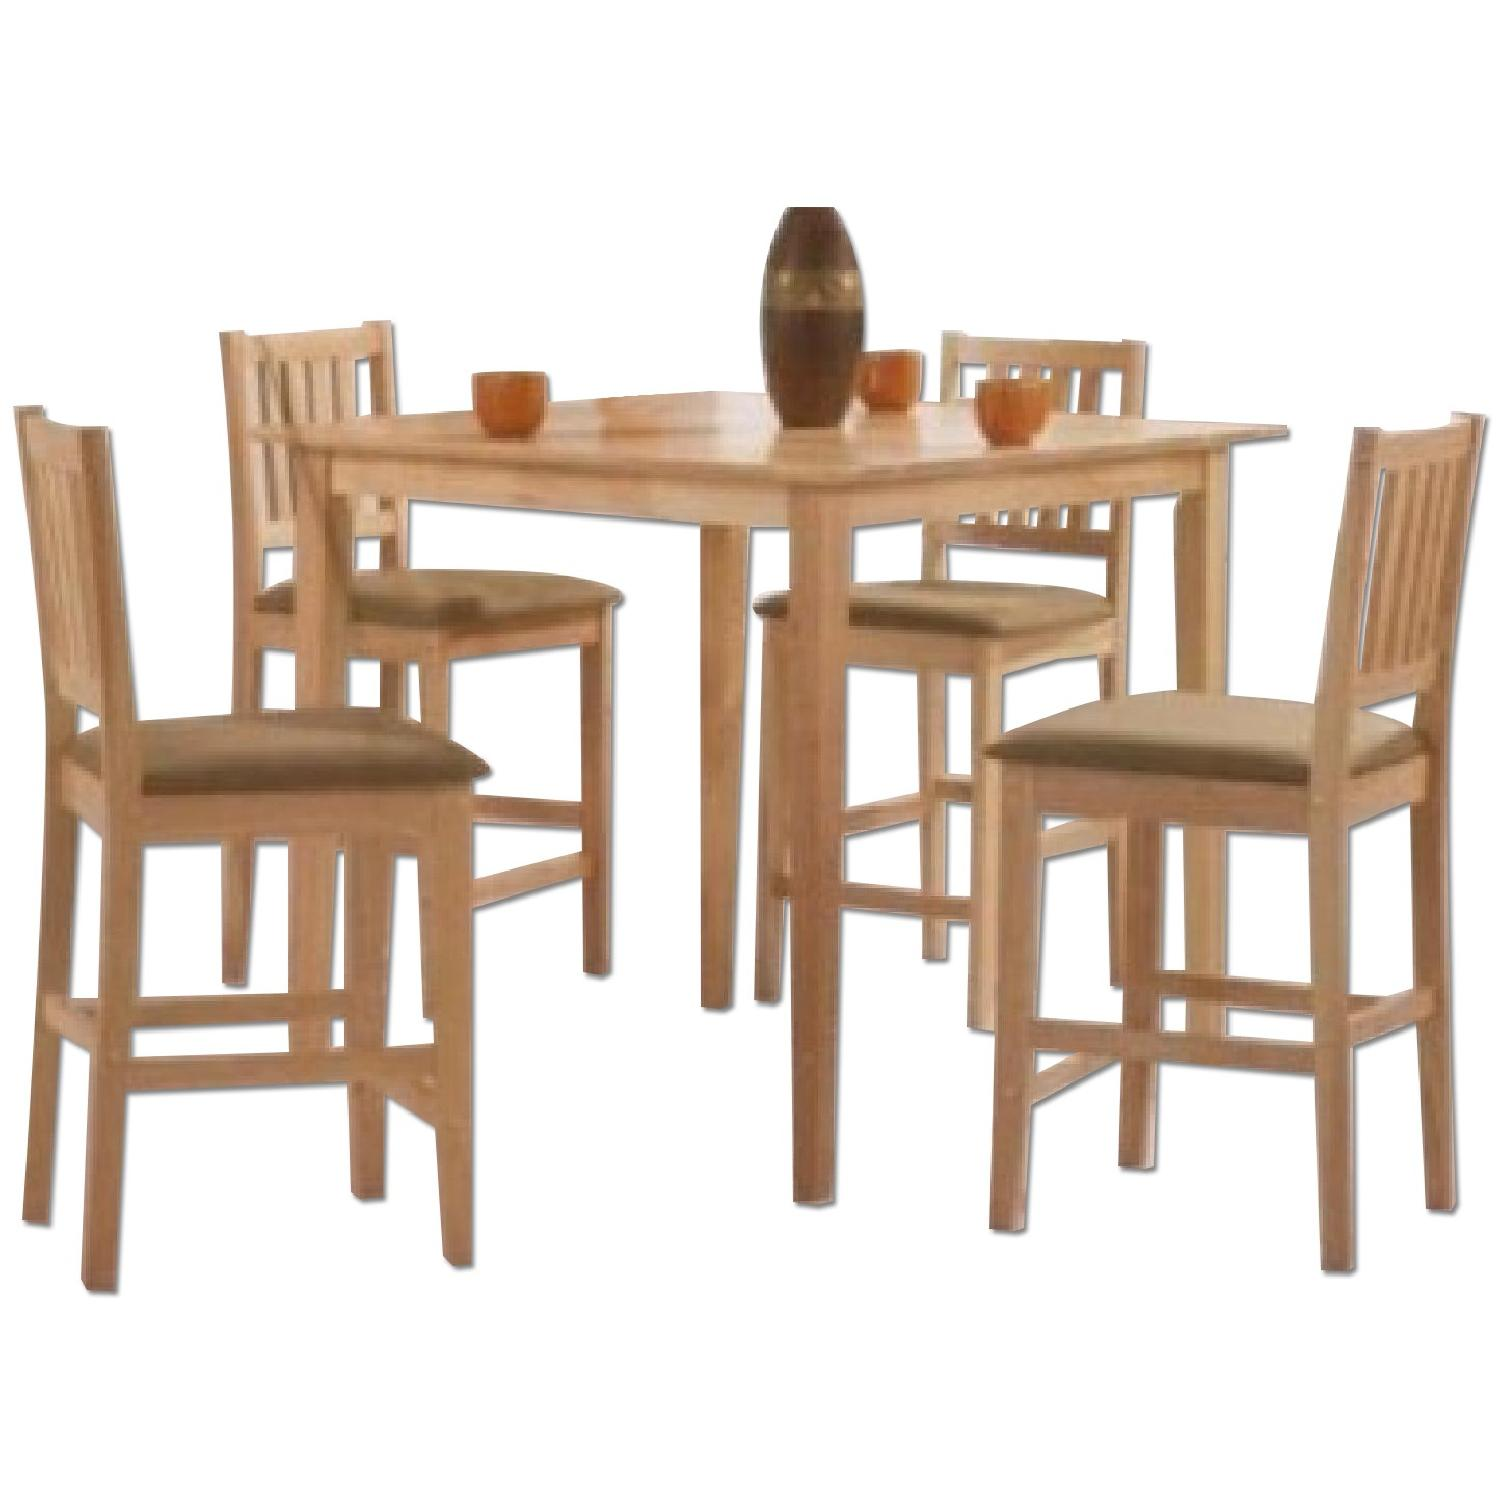 5 Piece Counter Height Solid Wood Dining Set In Natural Finish - image-0